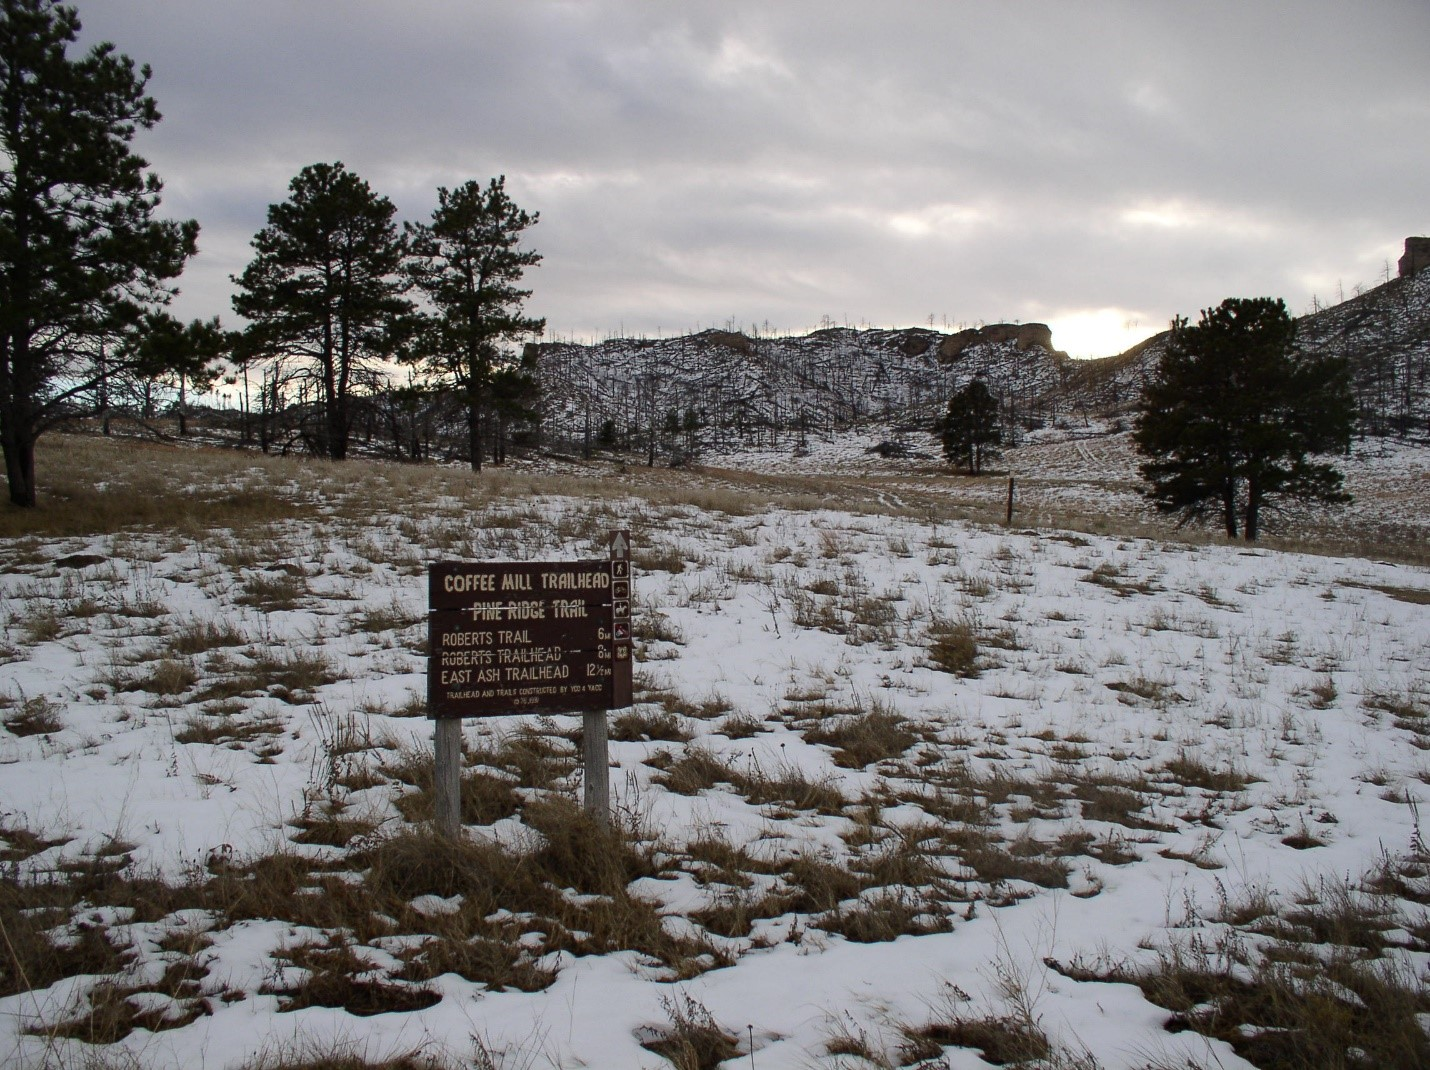 Coffee Mill Trailhead sign in open space with a light dusting of snow